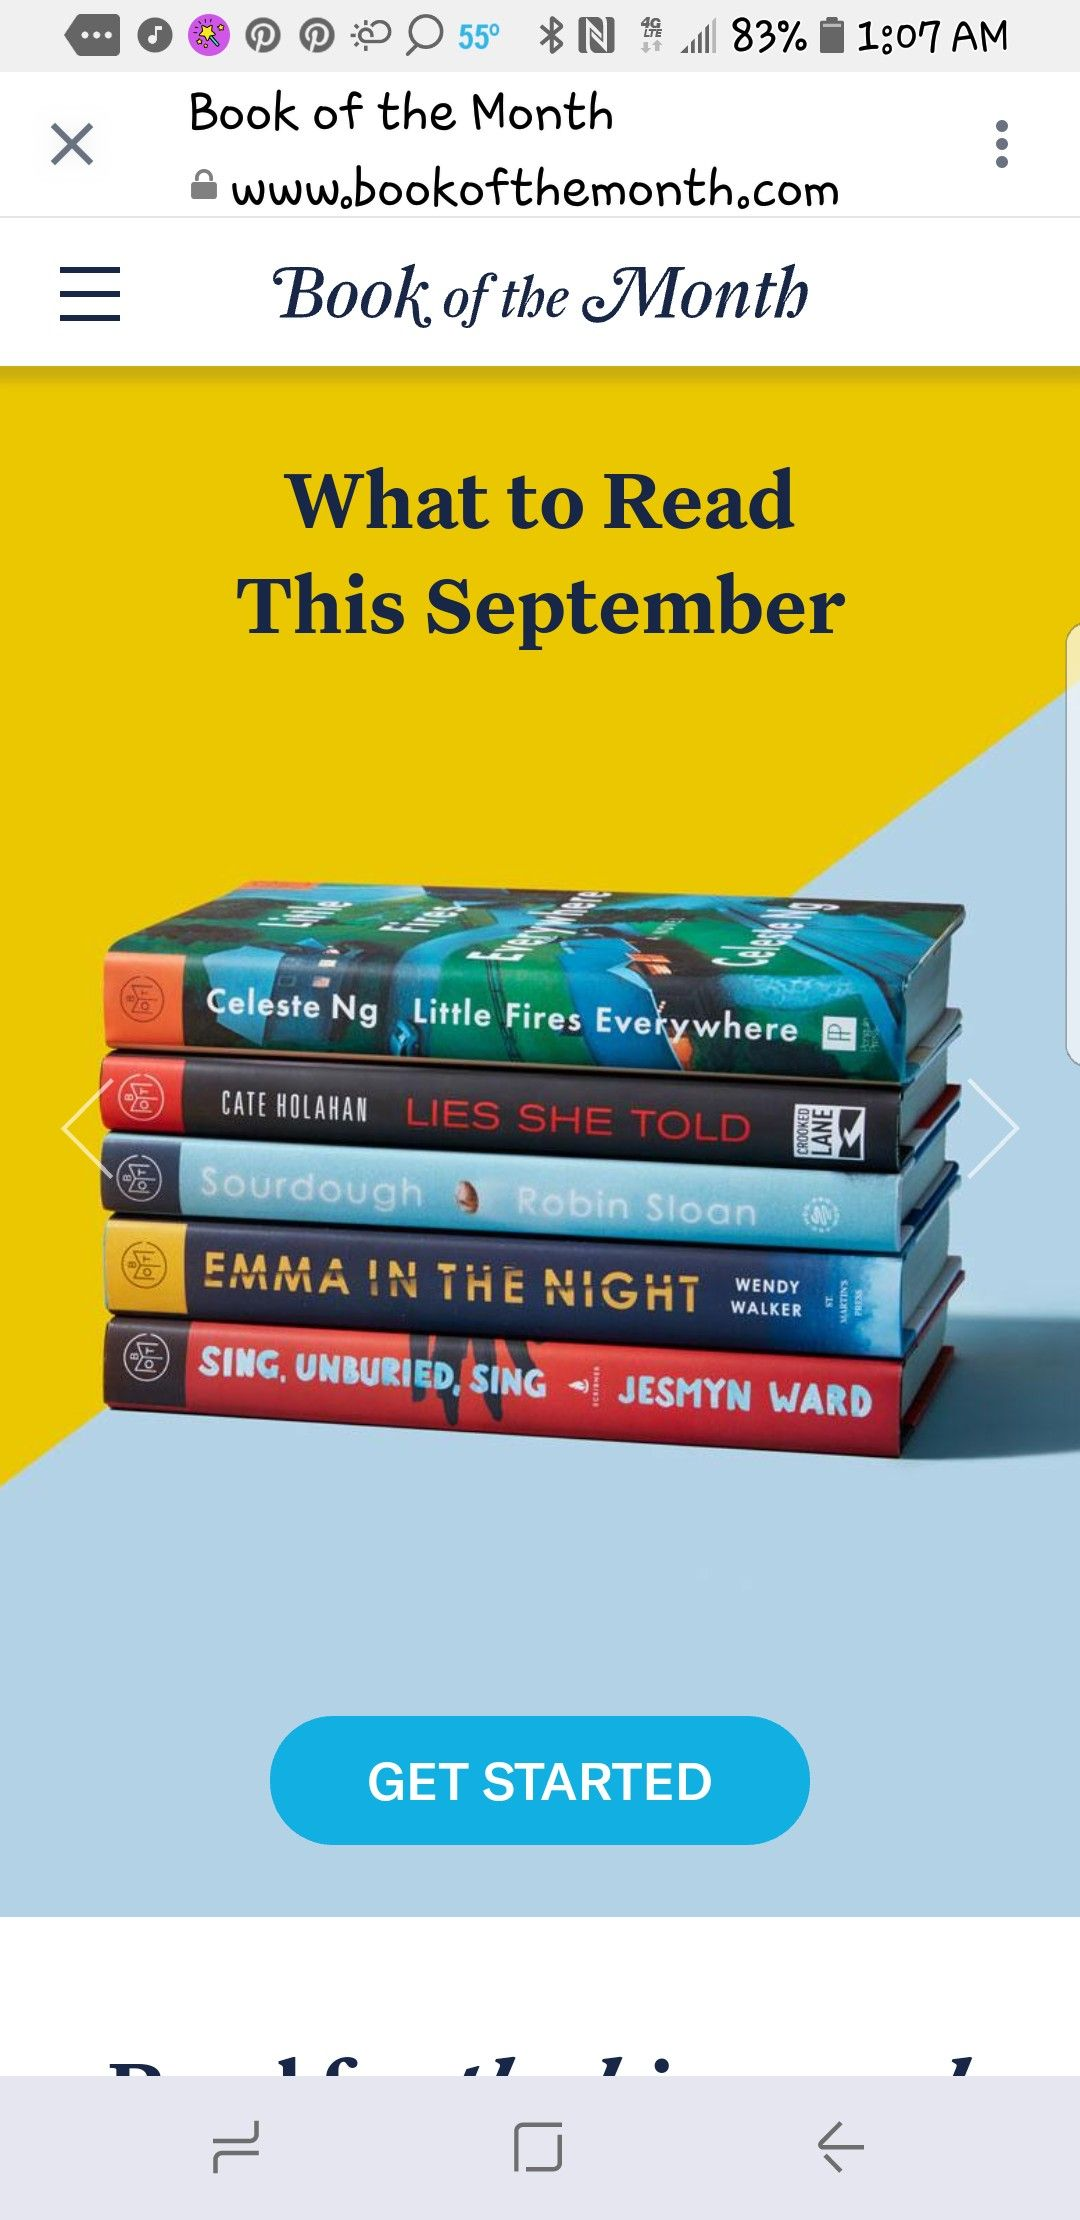 Pin by Terri on Books What to read, Night walkers, Books